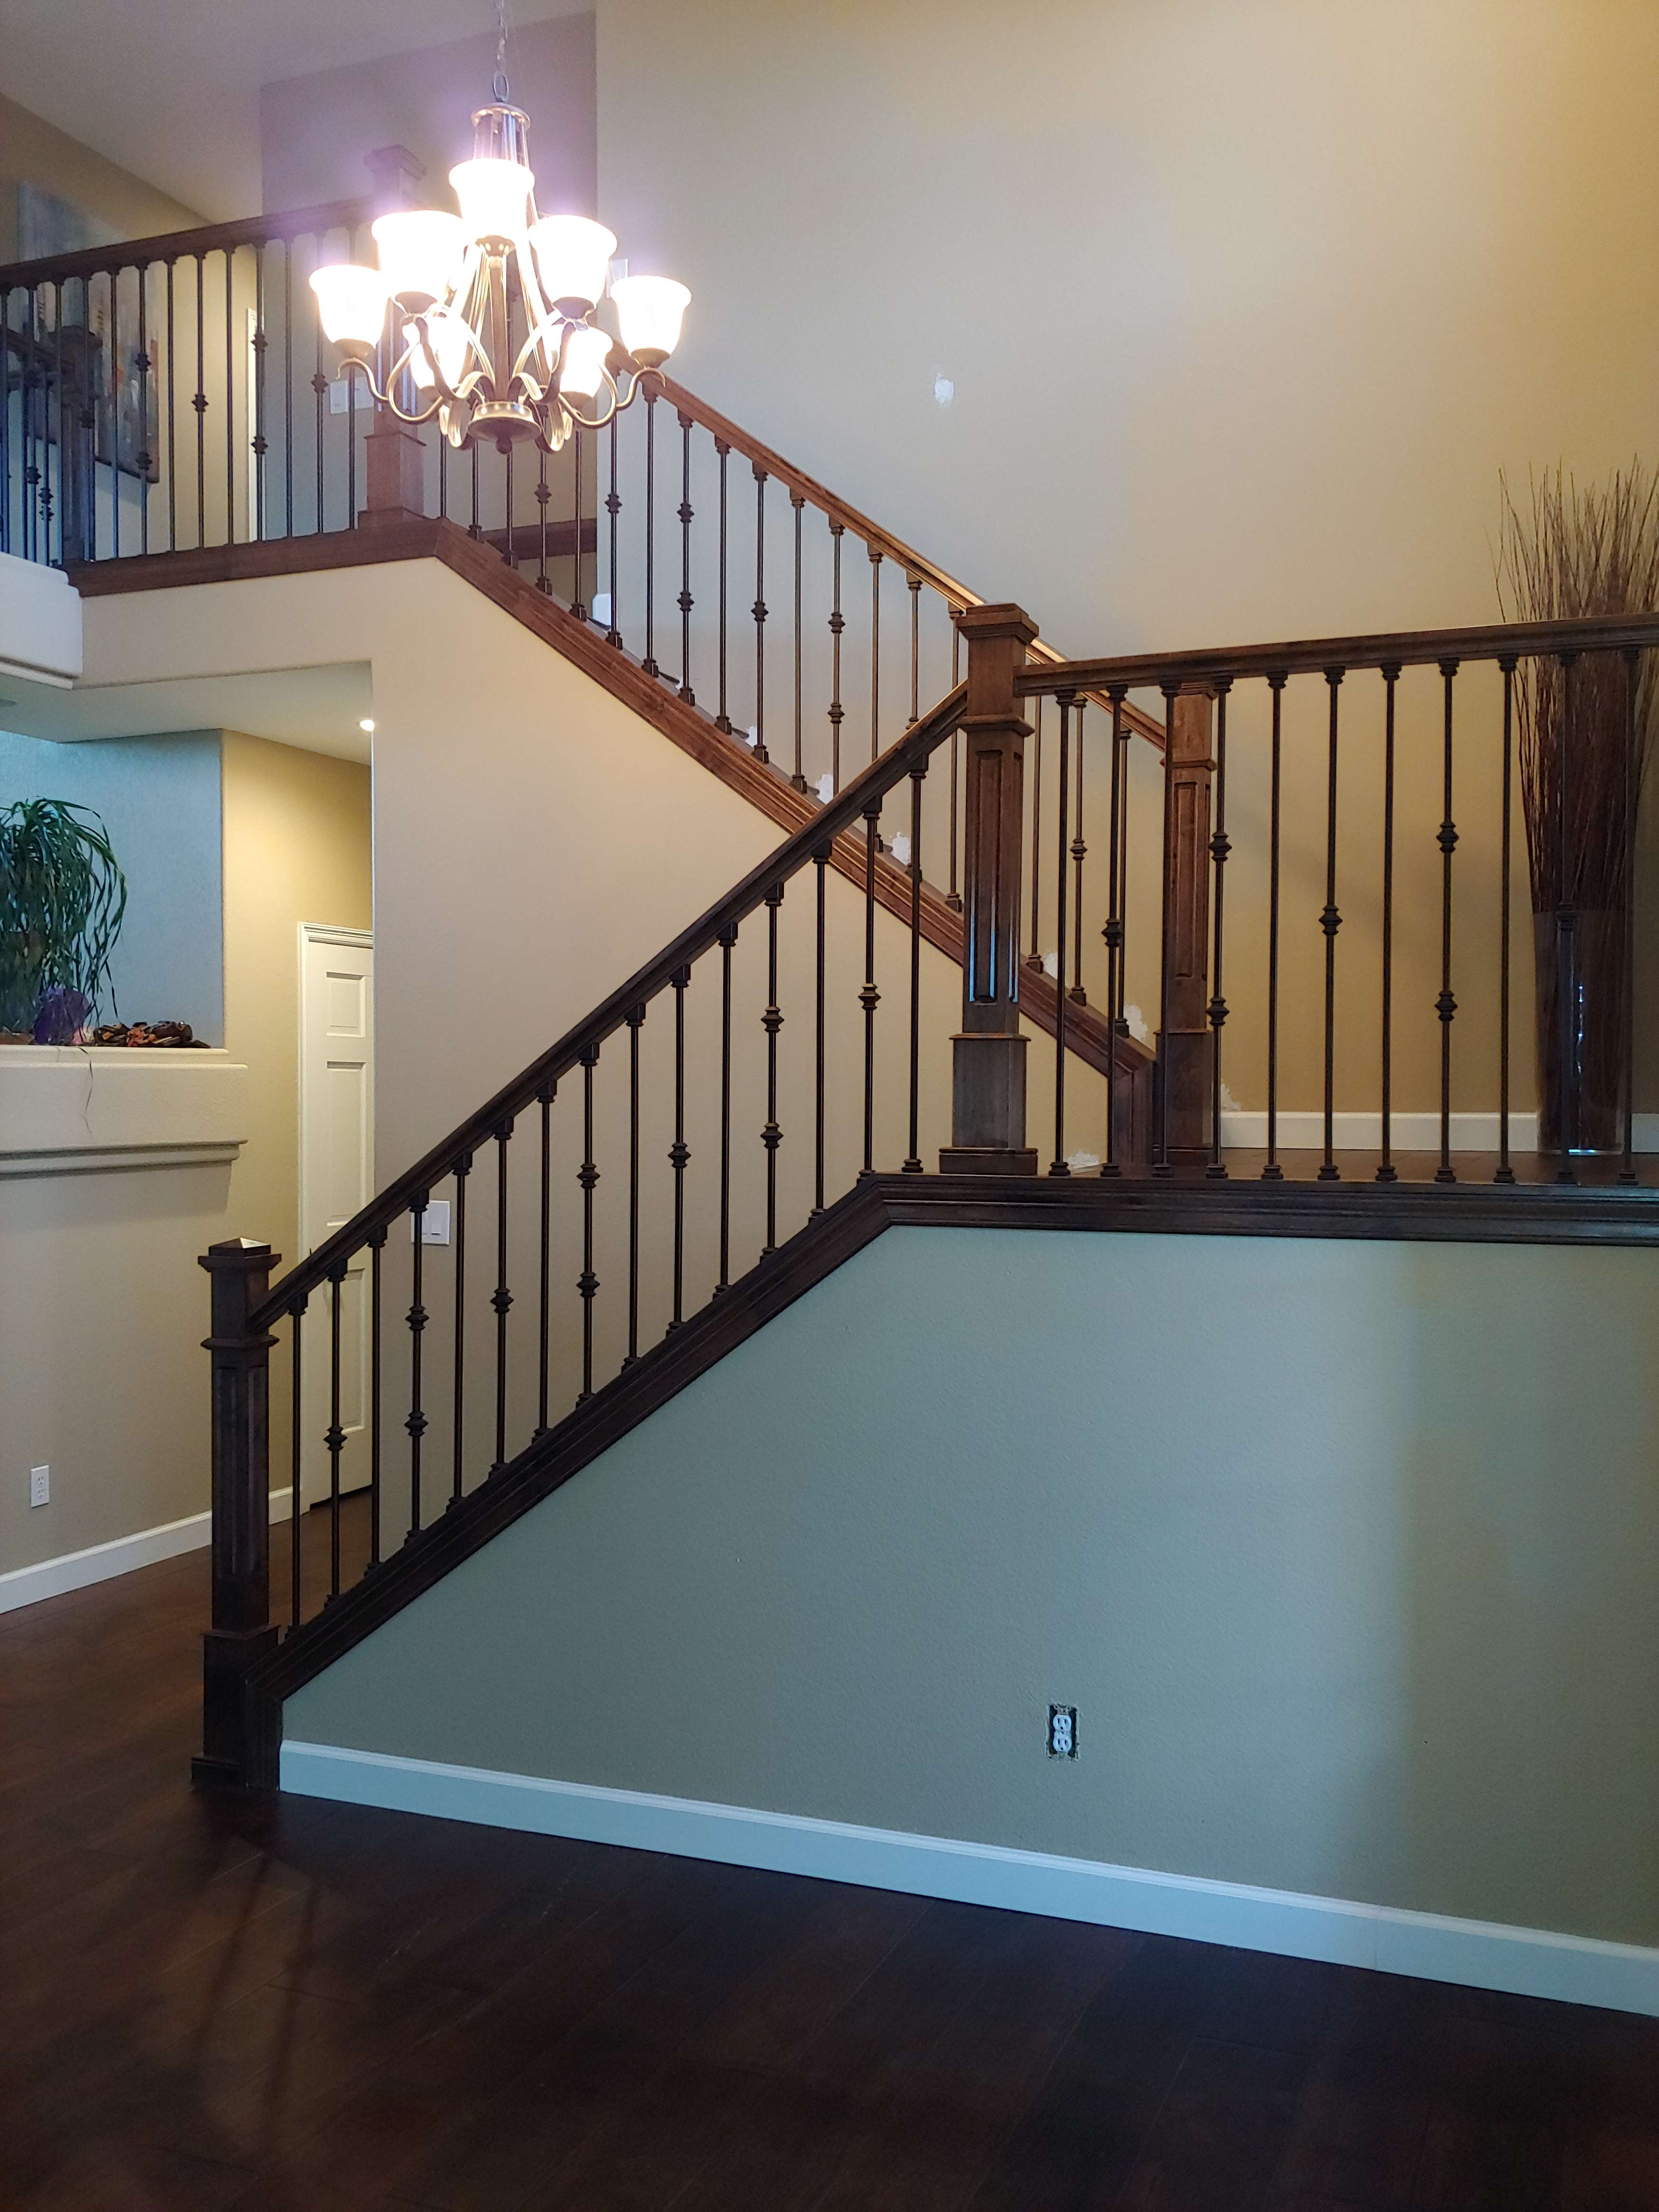 Stair Railings Installation Littleton Castle Rock Highland Ranch Co Pasko S Artistic Carpentry Llc